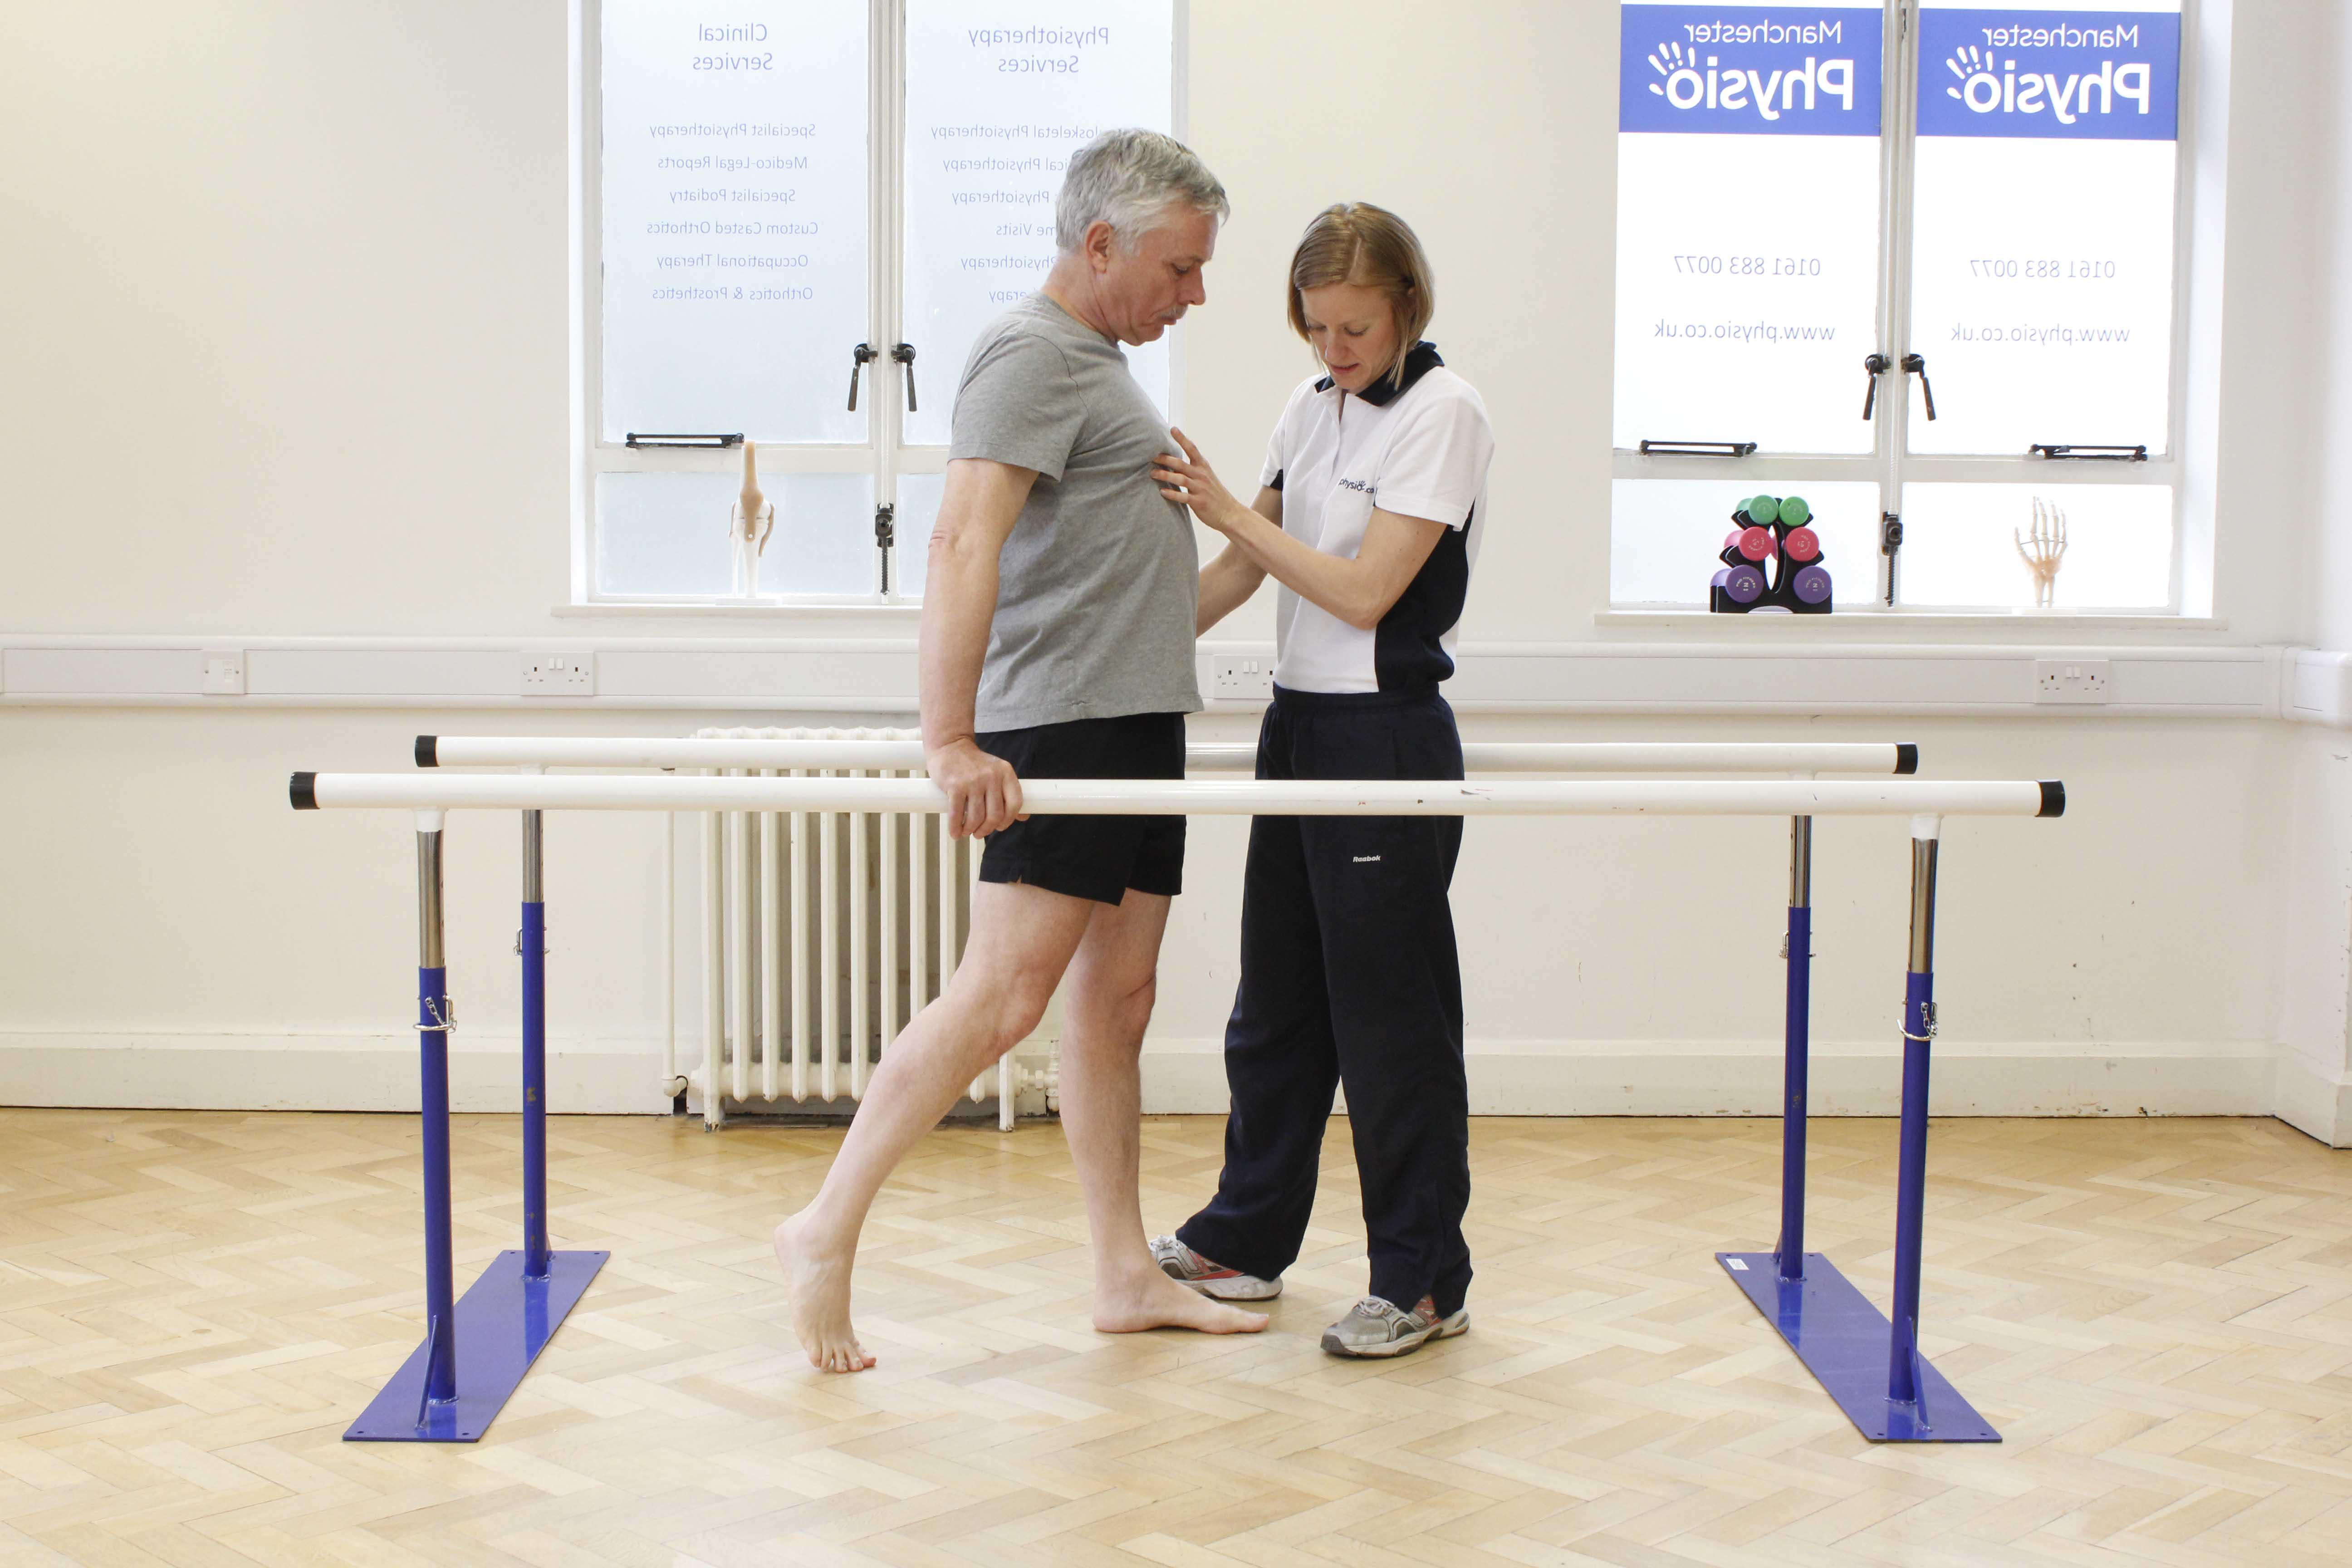 Specialist physiotherapist supervising mobilisation exercises between the parallel bars